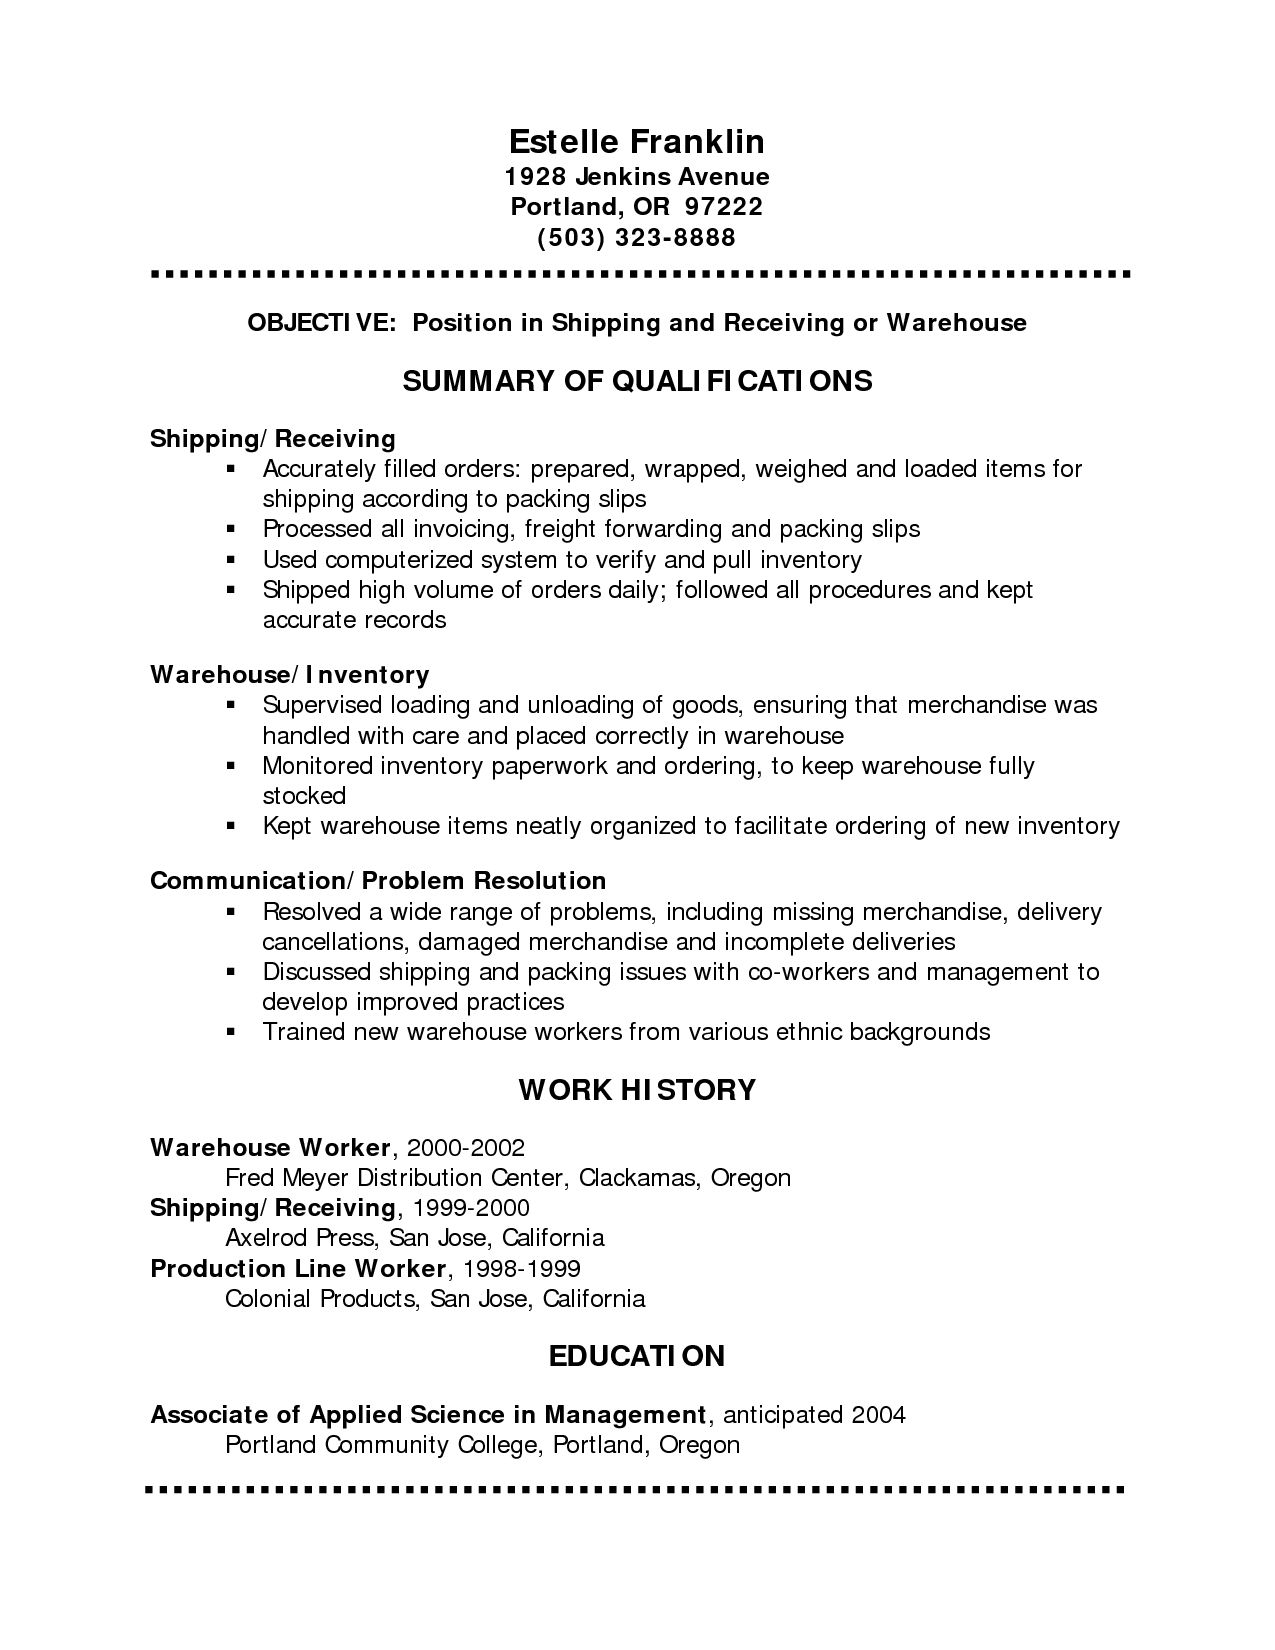 Apa Resume Sample Computer Engineer Cover Letter Costume References  Reference Page  Strength In Resume